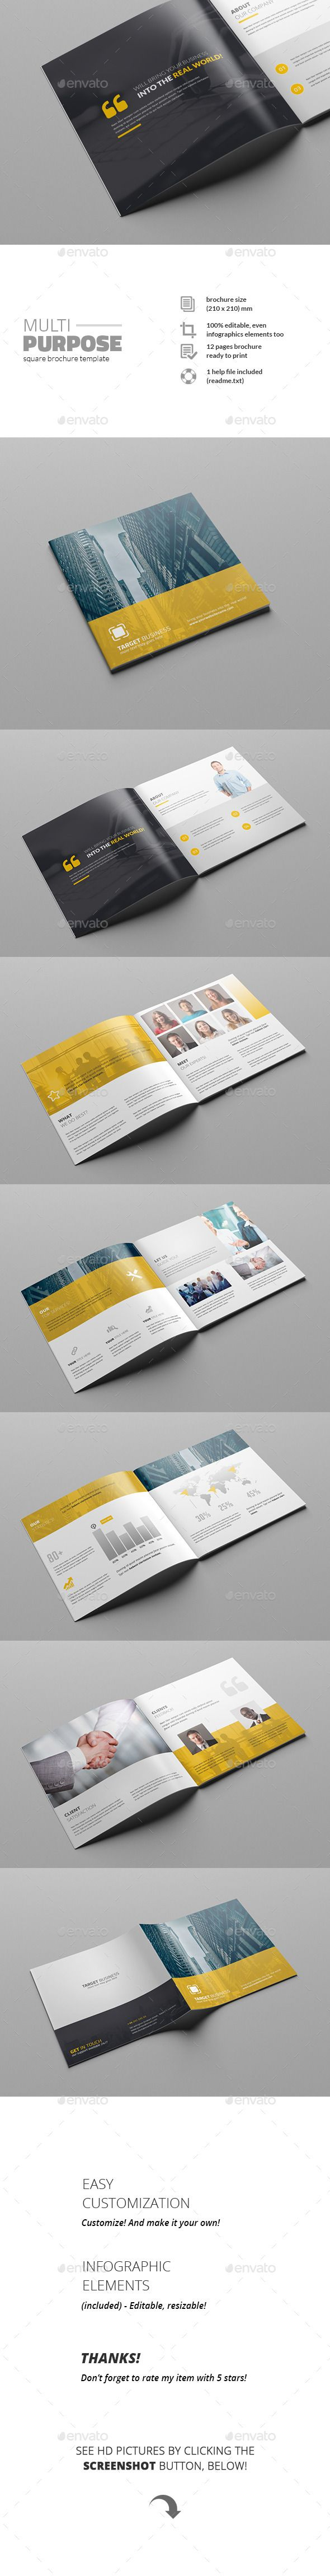 Multipurpose Square Brochure Template #design Download: http://graphicriver.net/item/multipurpose-square-brochure/11641822?ref=ksioks